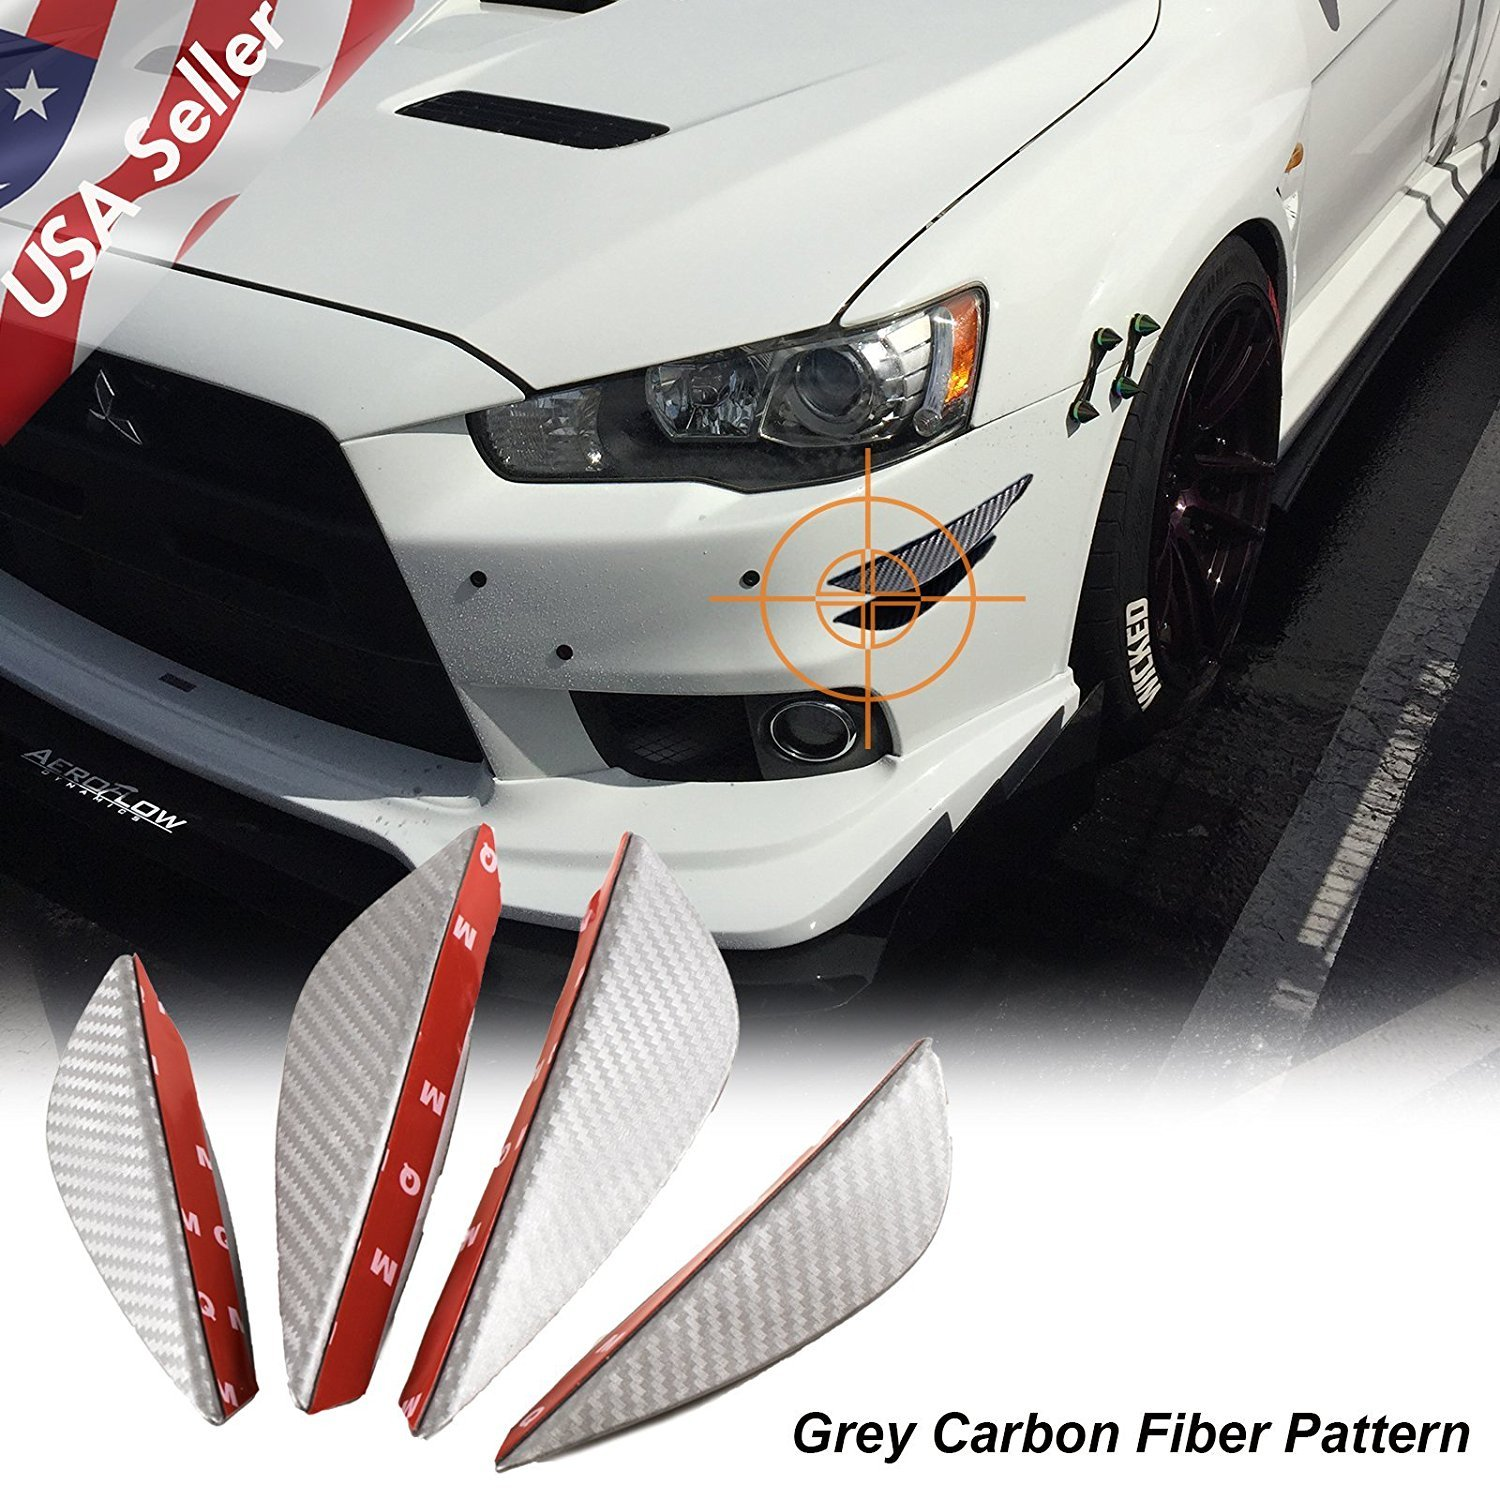 4pcs Carbon Fiber Pattern Trim Front Bumper Canards Fins Body Diffuser Splitters Kits Universal Fit For Most Car Xotic Tech Direct